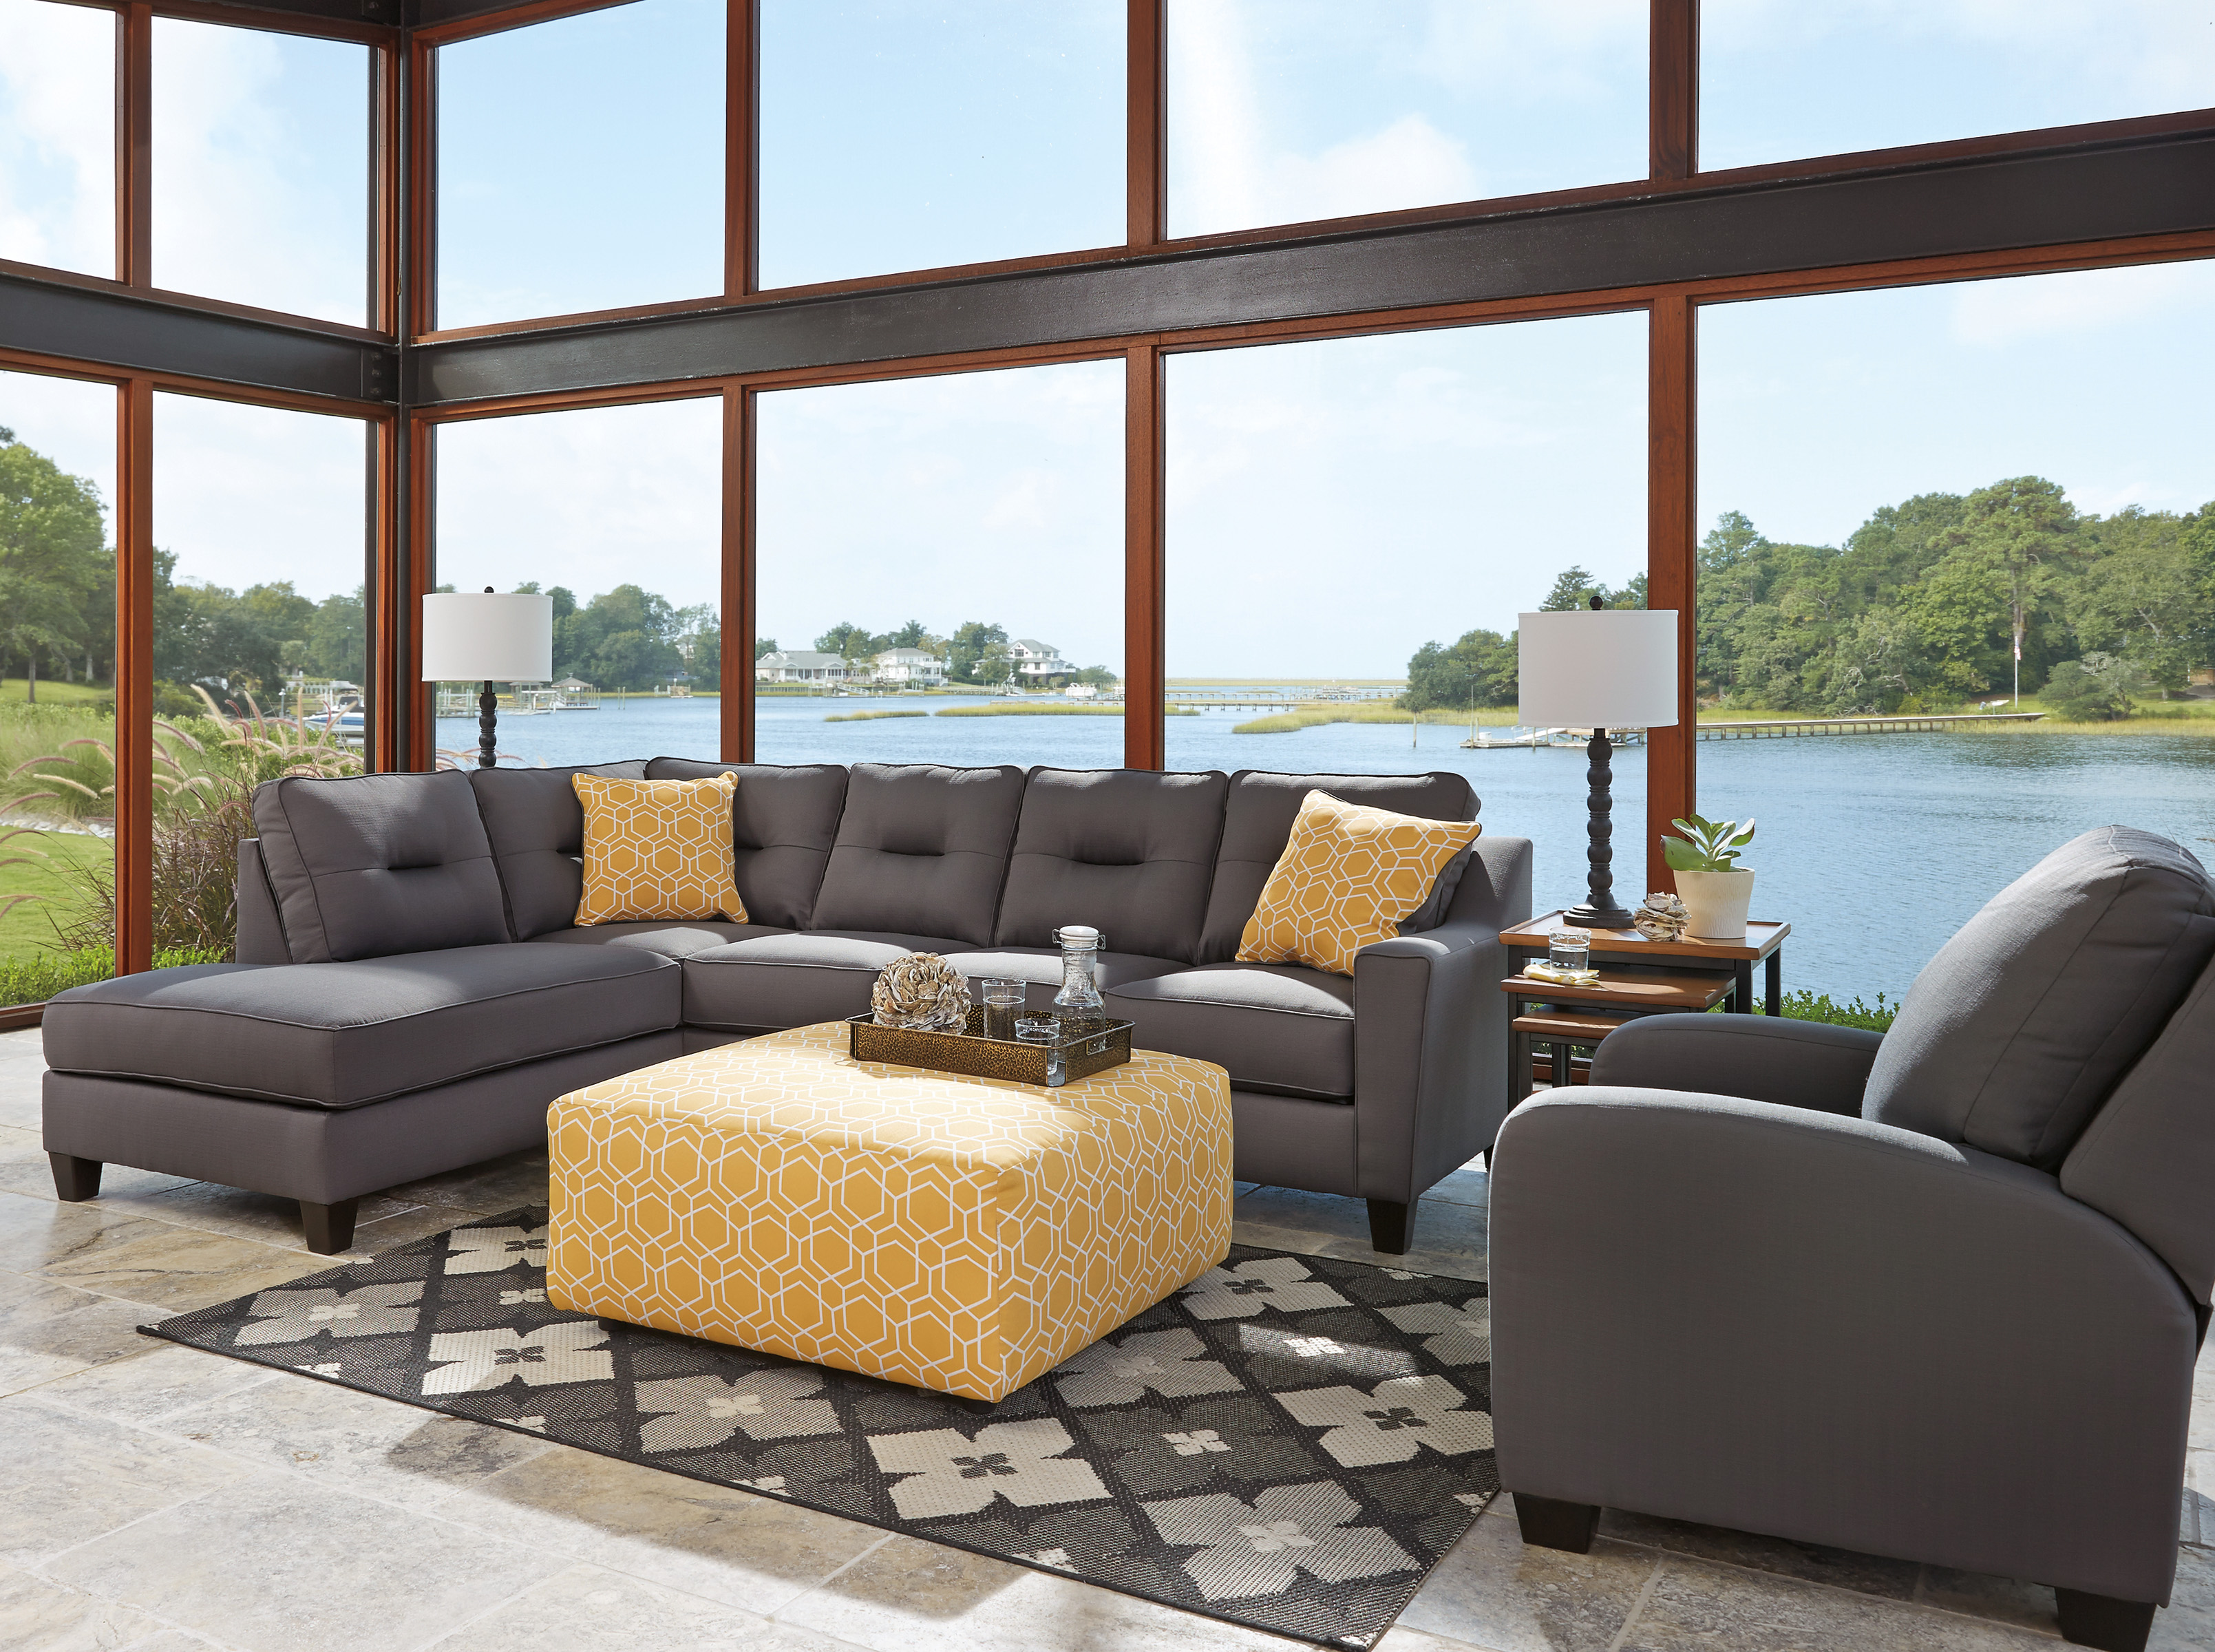 Tremendous Kirwin Nuvella Gray Laf Sectional Marjen Of Chicago Home Interior And Landscaping Palasignezvosmurscom